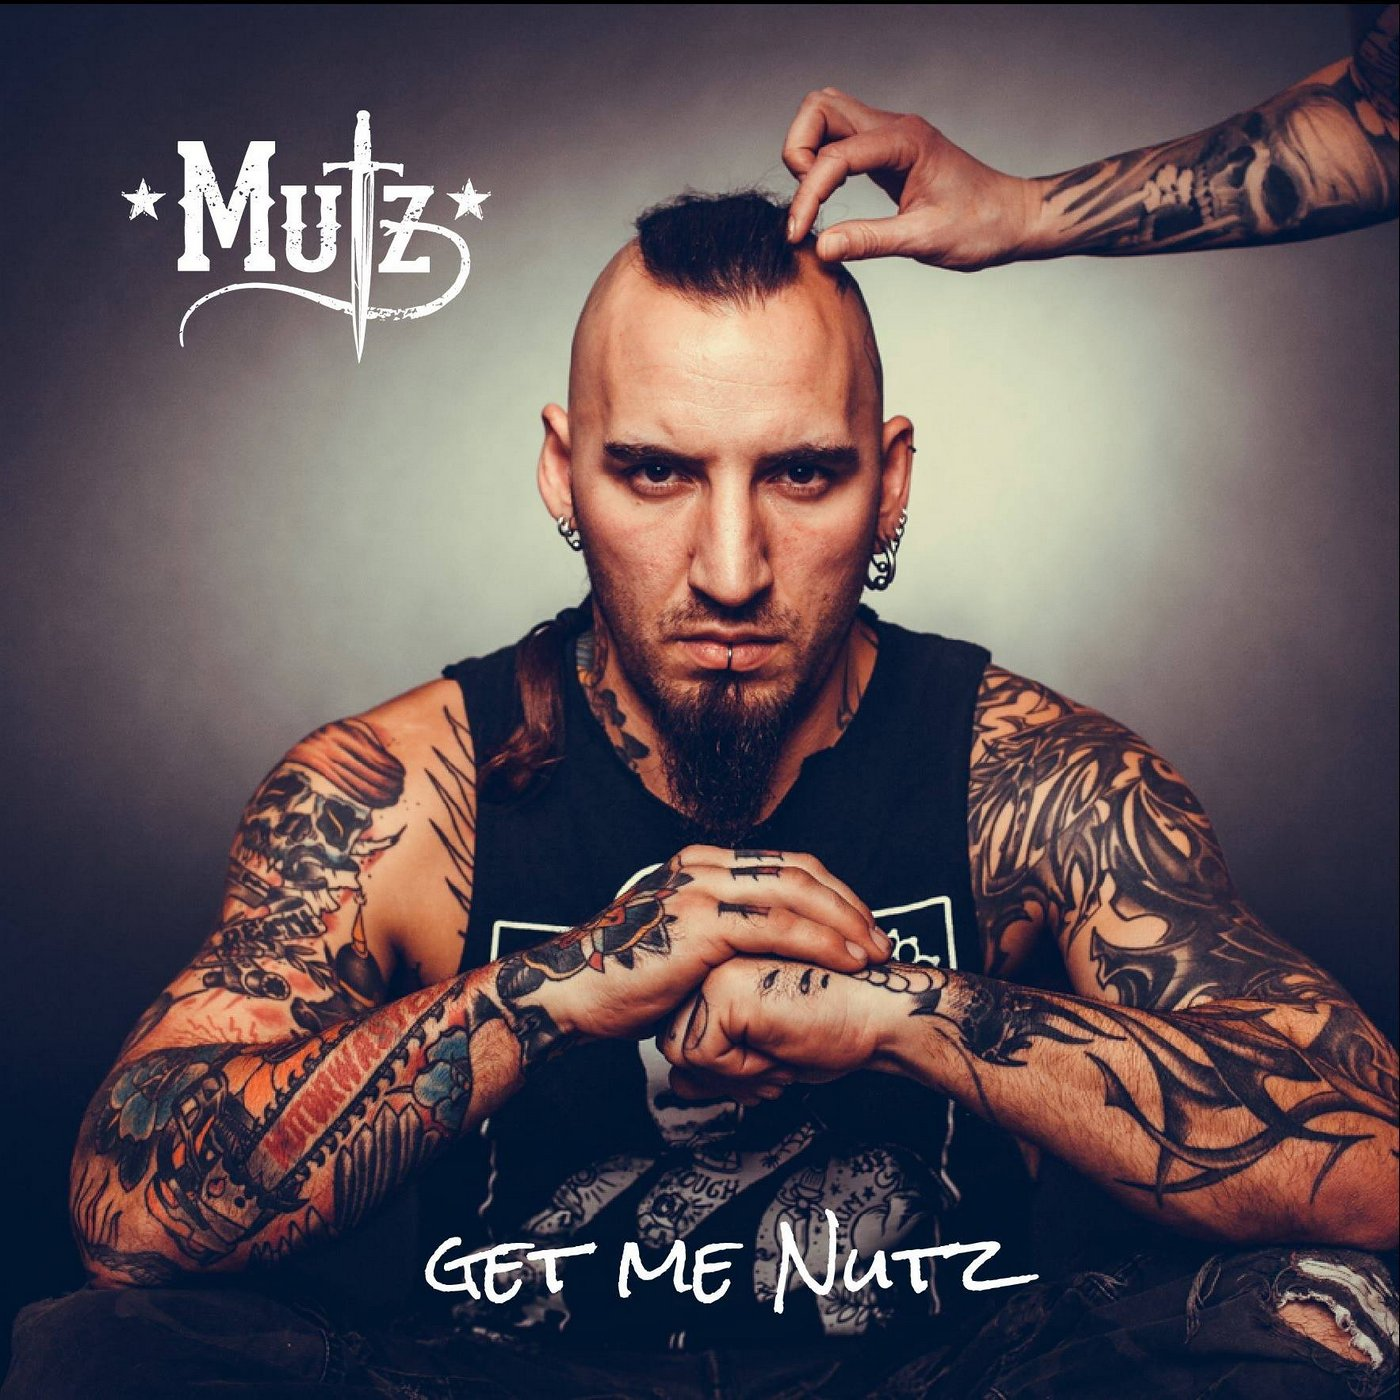 Mutz: Get me Nutz (2016) Book Cover